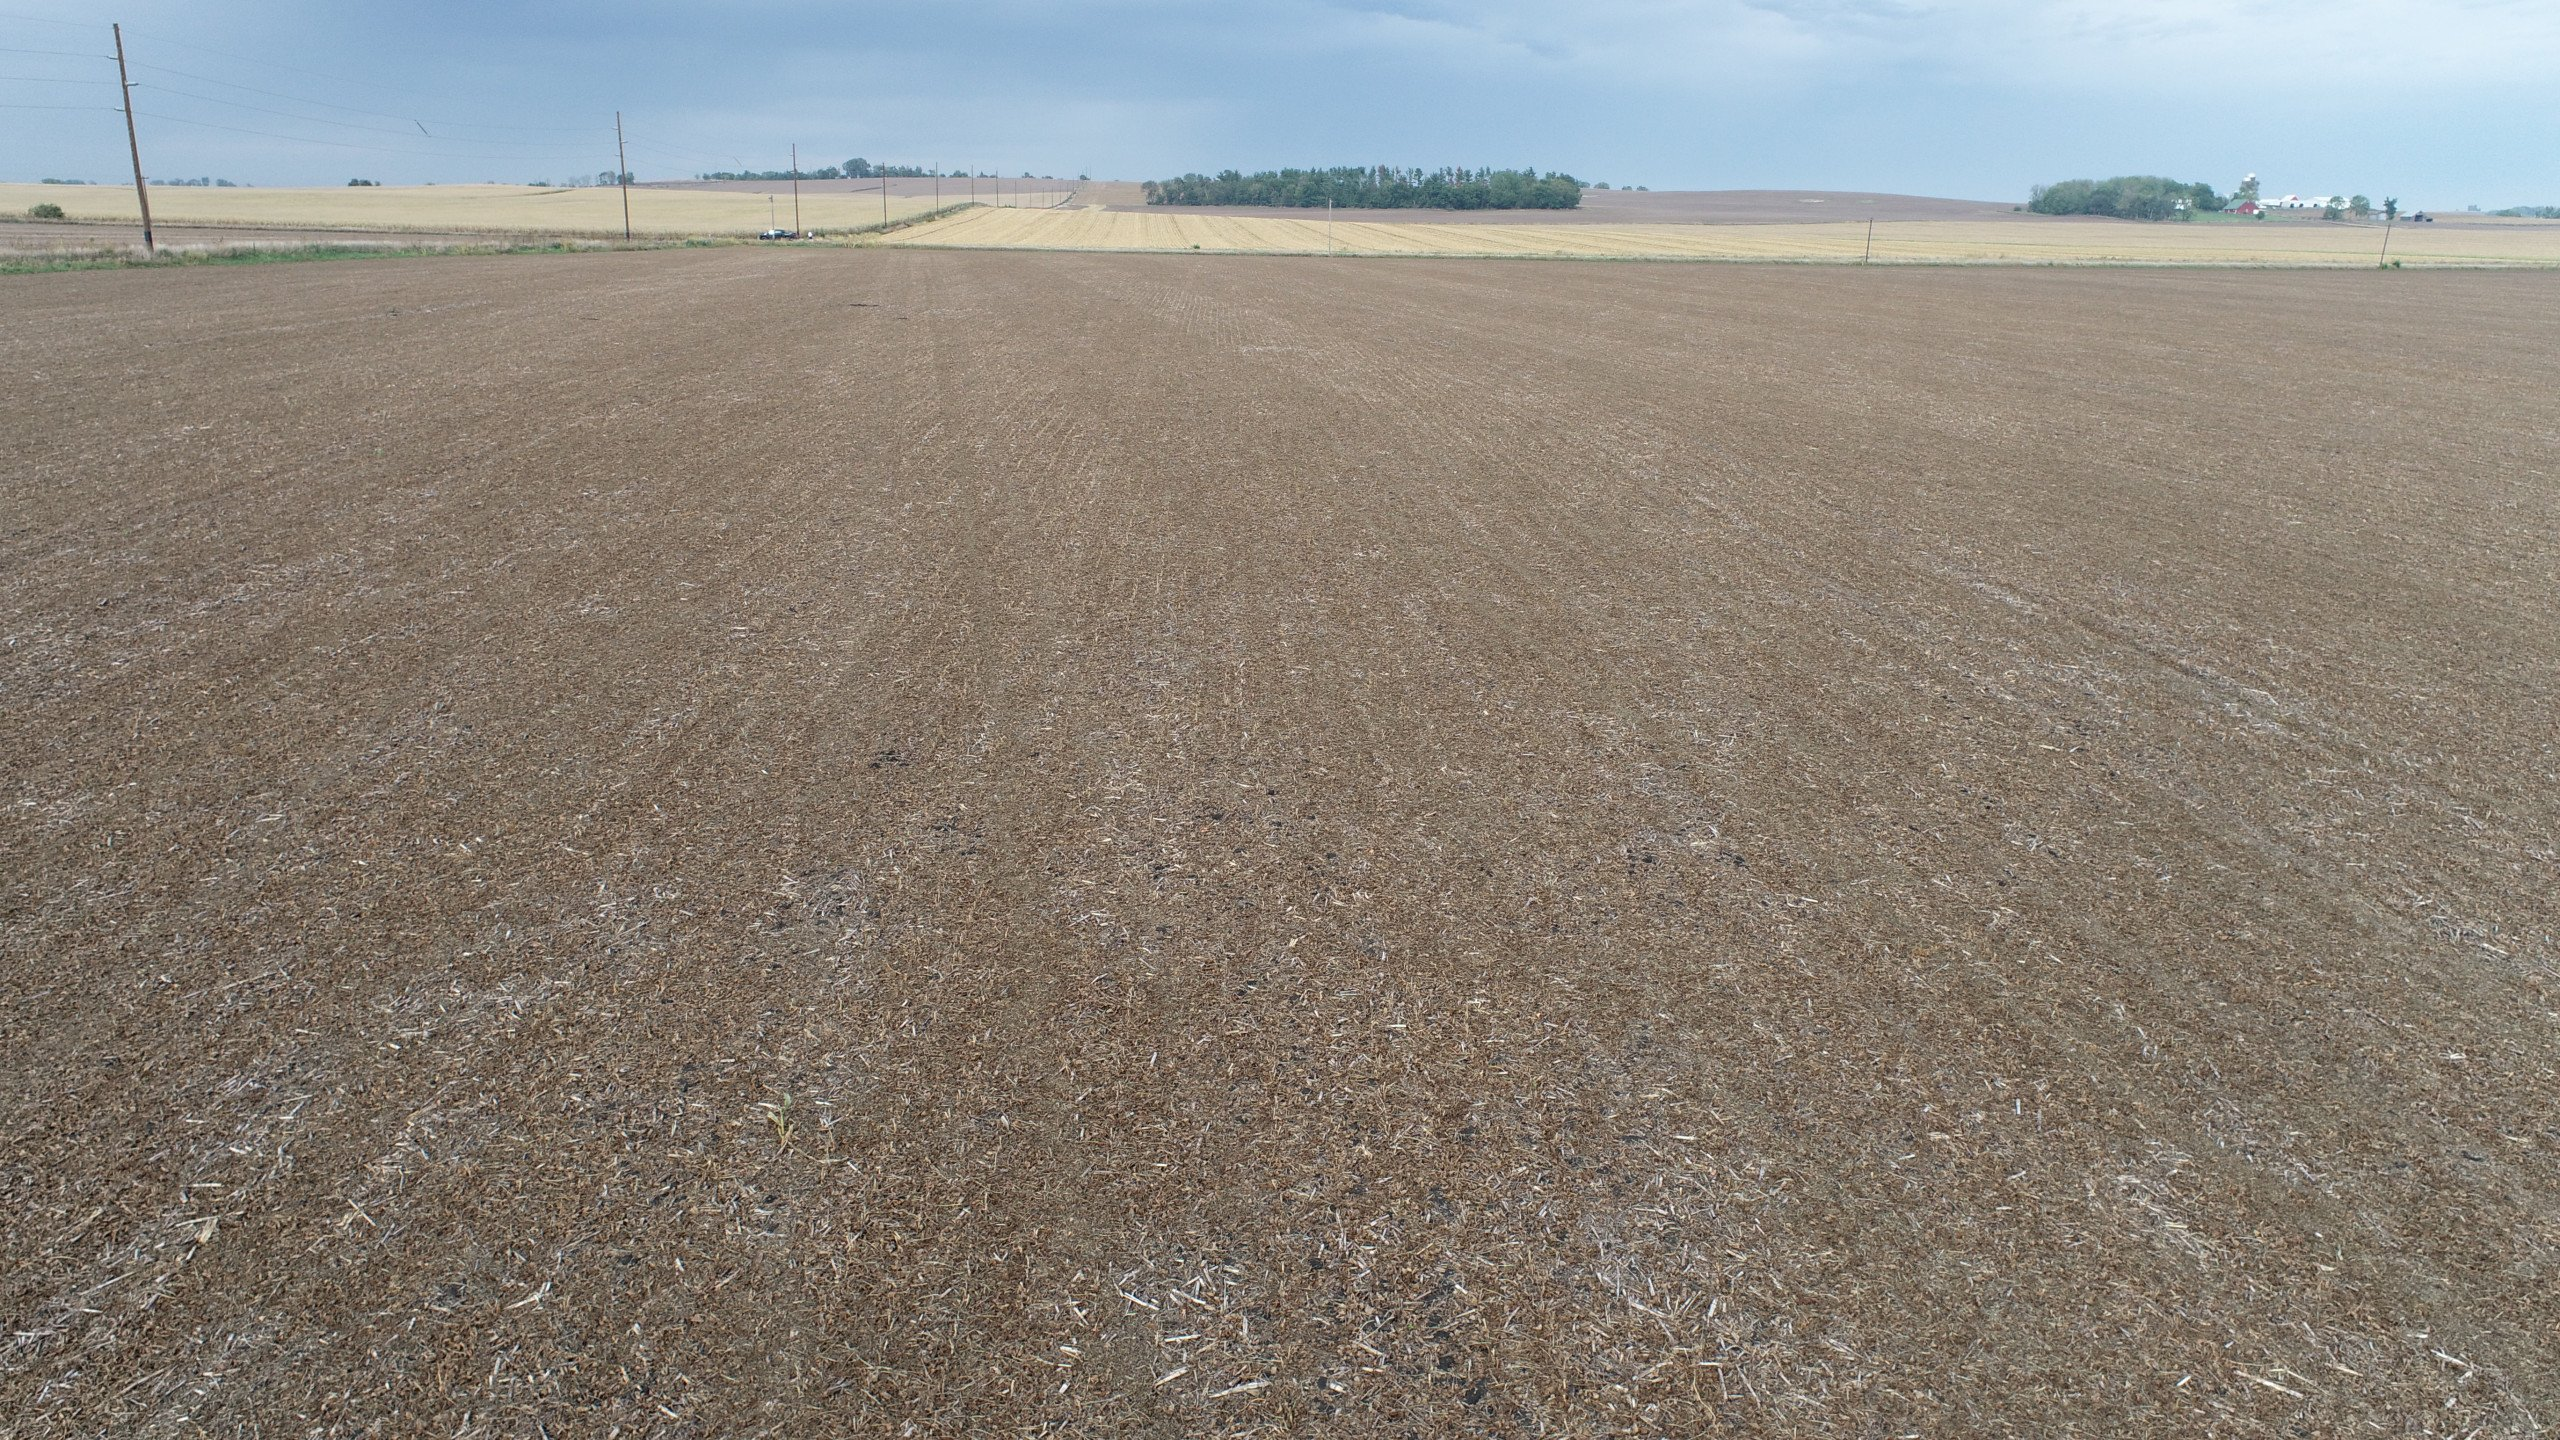 auctions-clinton-county-iowa-80-acres-listing-number-15792-DJI_0086-2.jpg